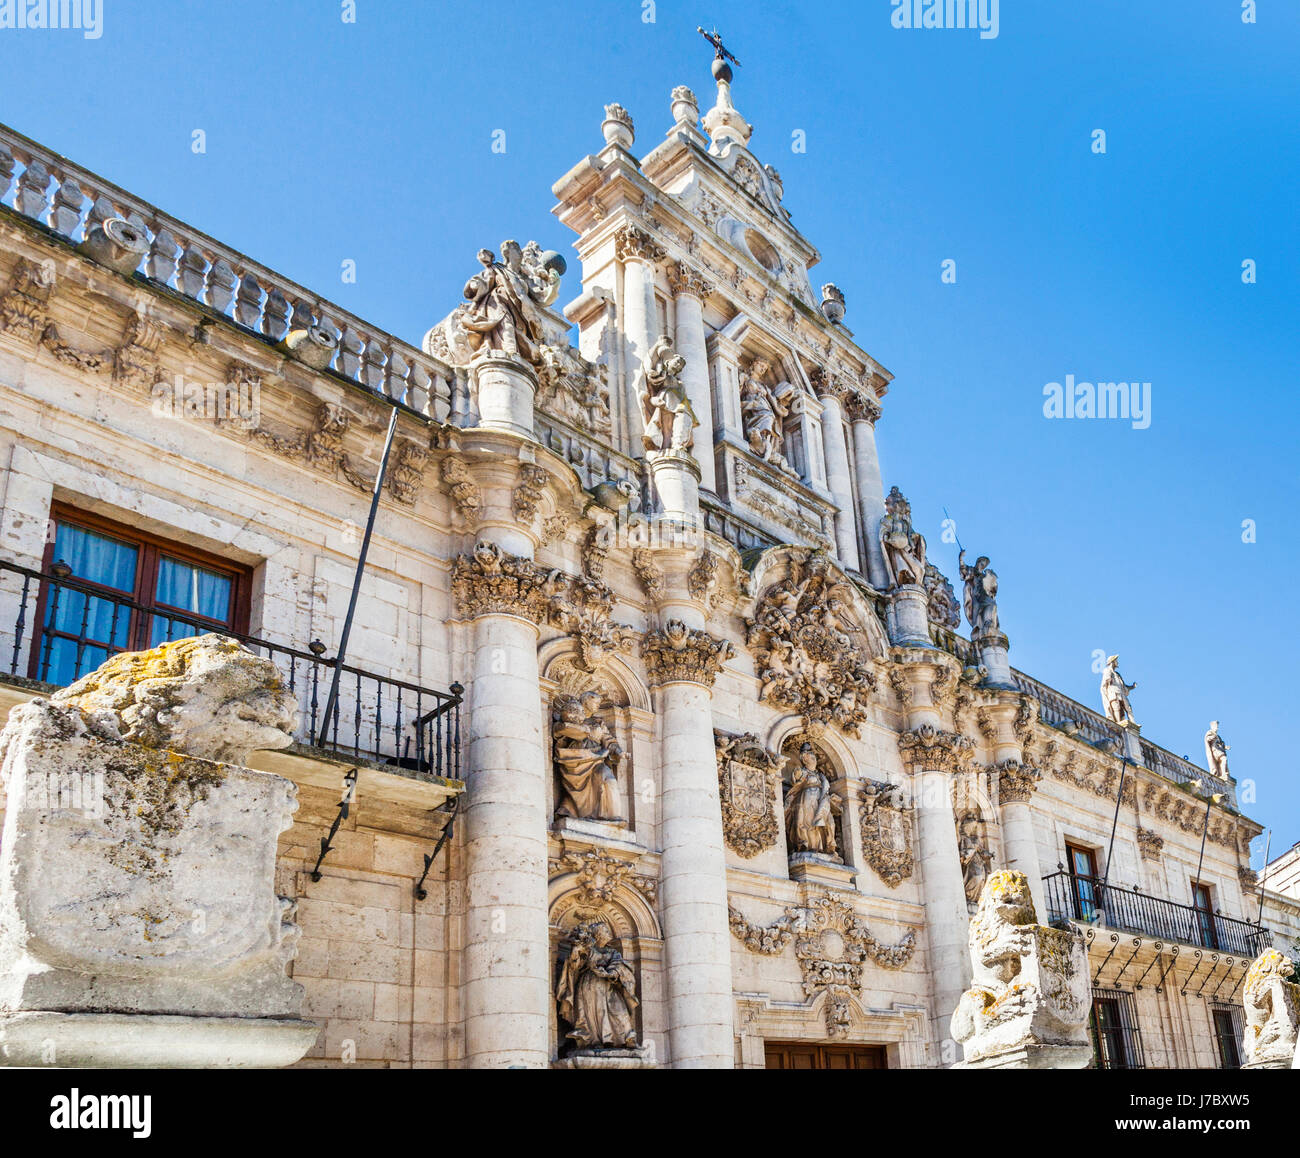 Spain, Castile and Leon, Baroque facade of the University of Valladolid, Faculty of Law, - Stock Image